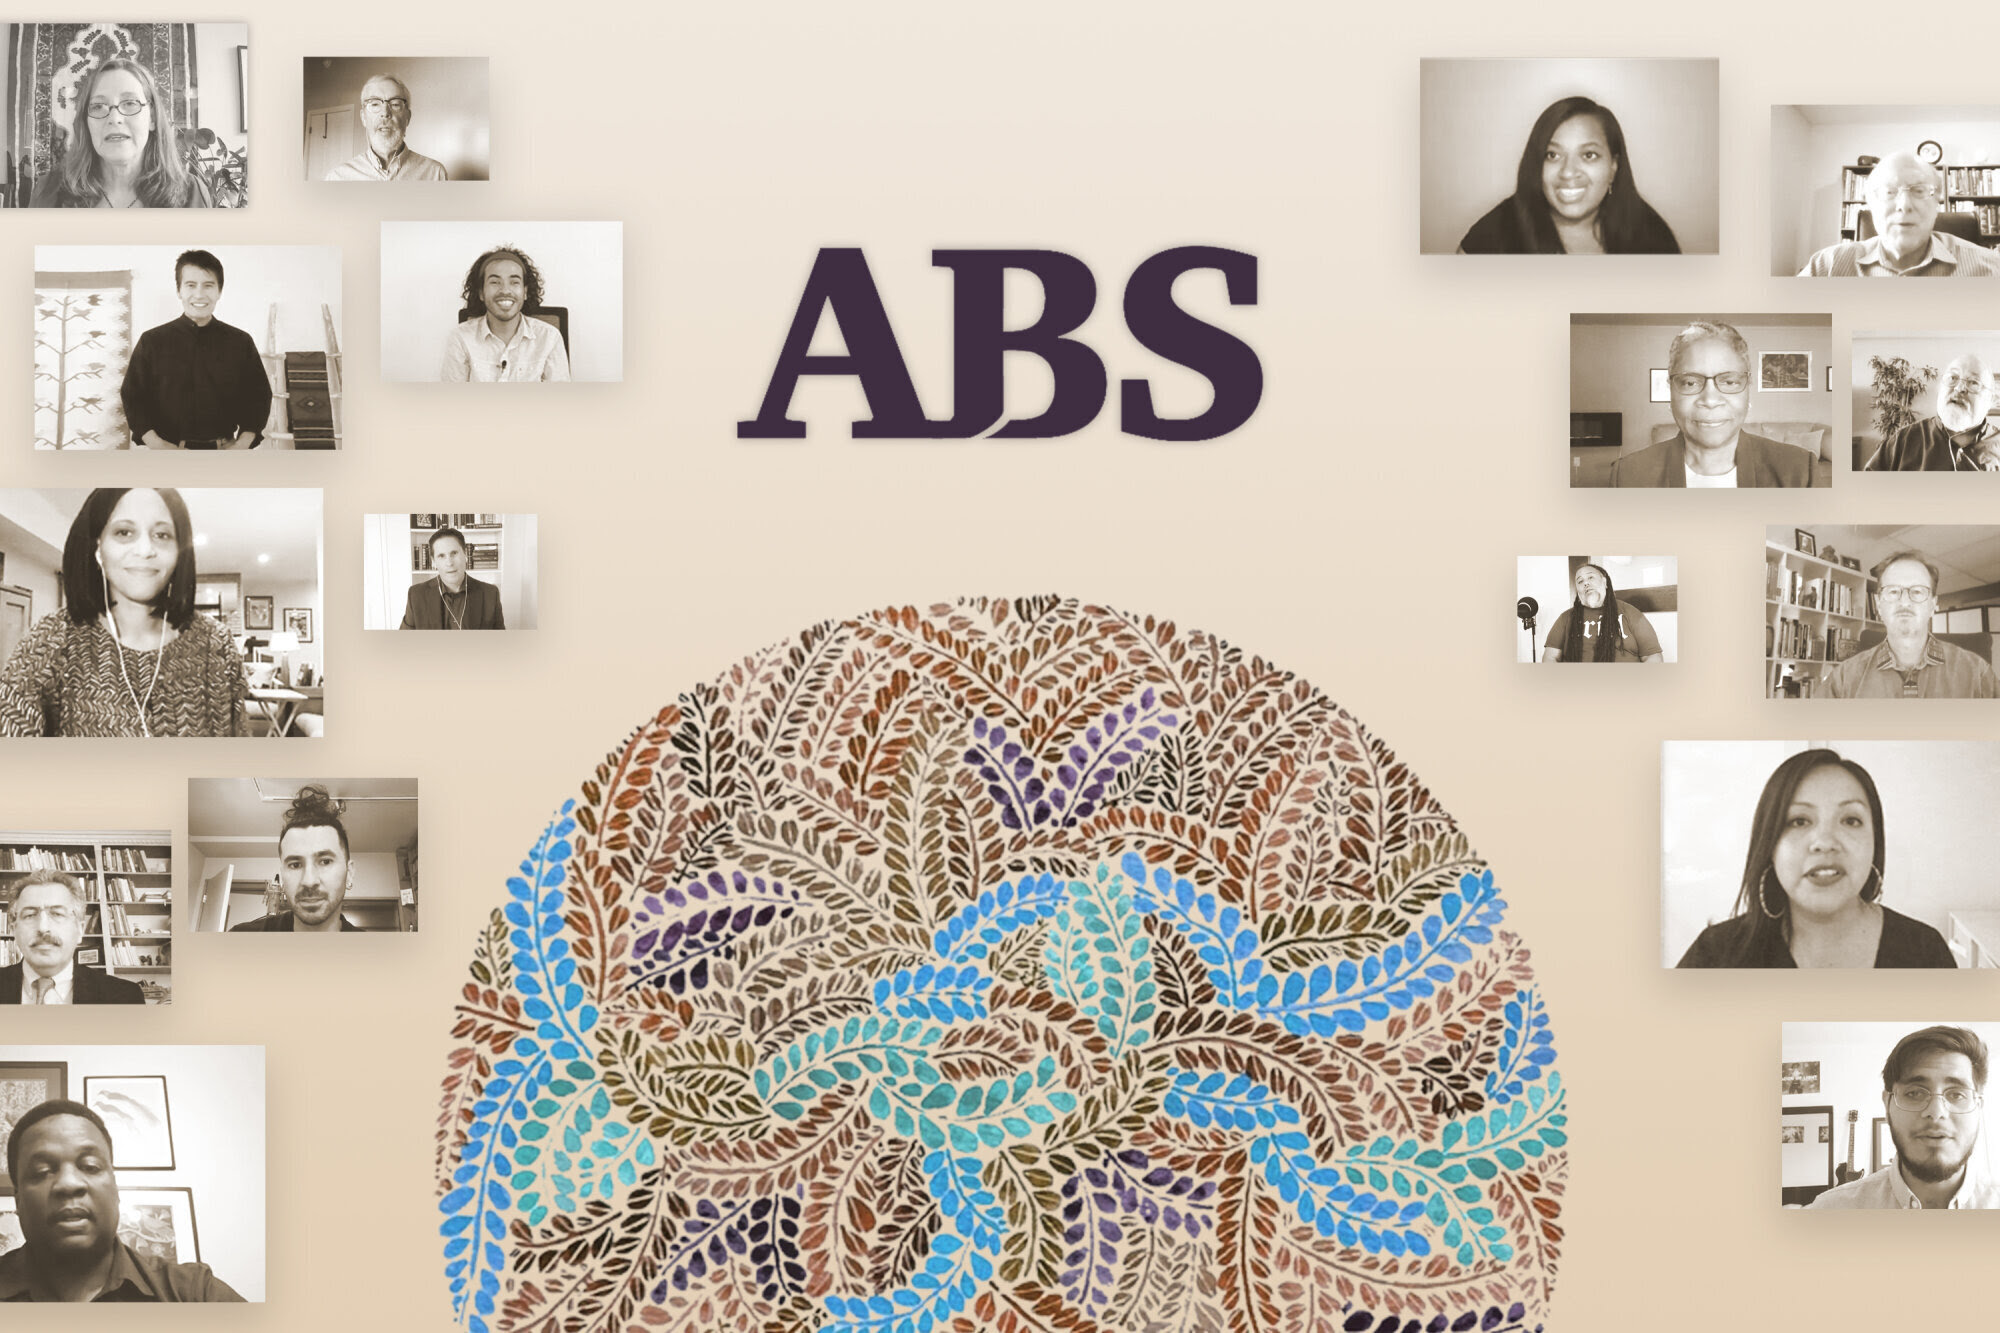 Illustration showing the letters ABS above a circular multi-color pattern of fern leaves, all surrounded by monochrome video-call frames of diverse conference participants.